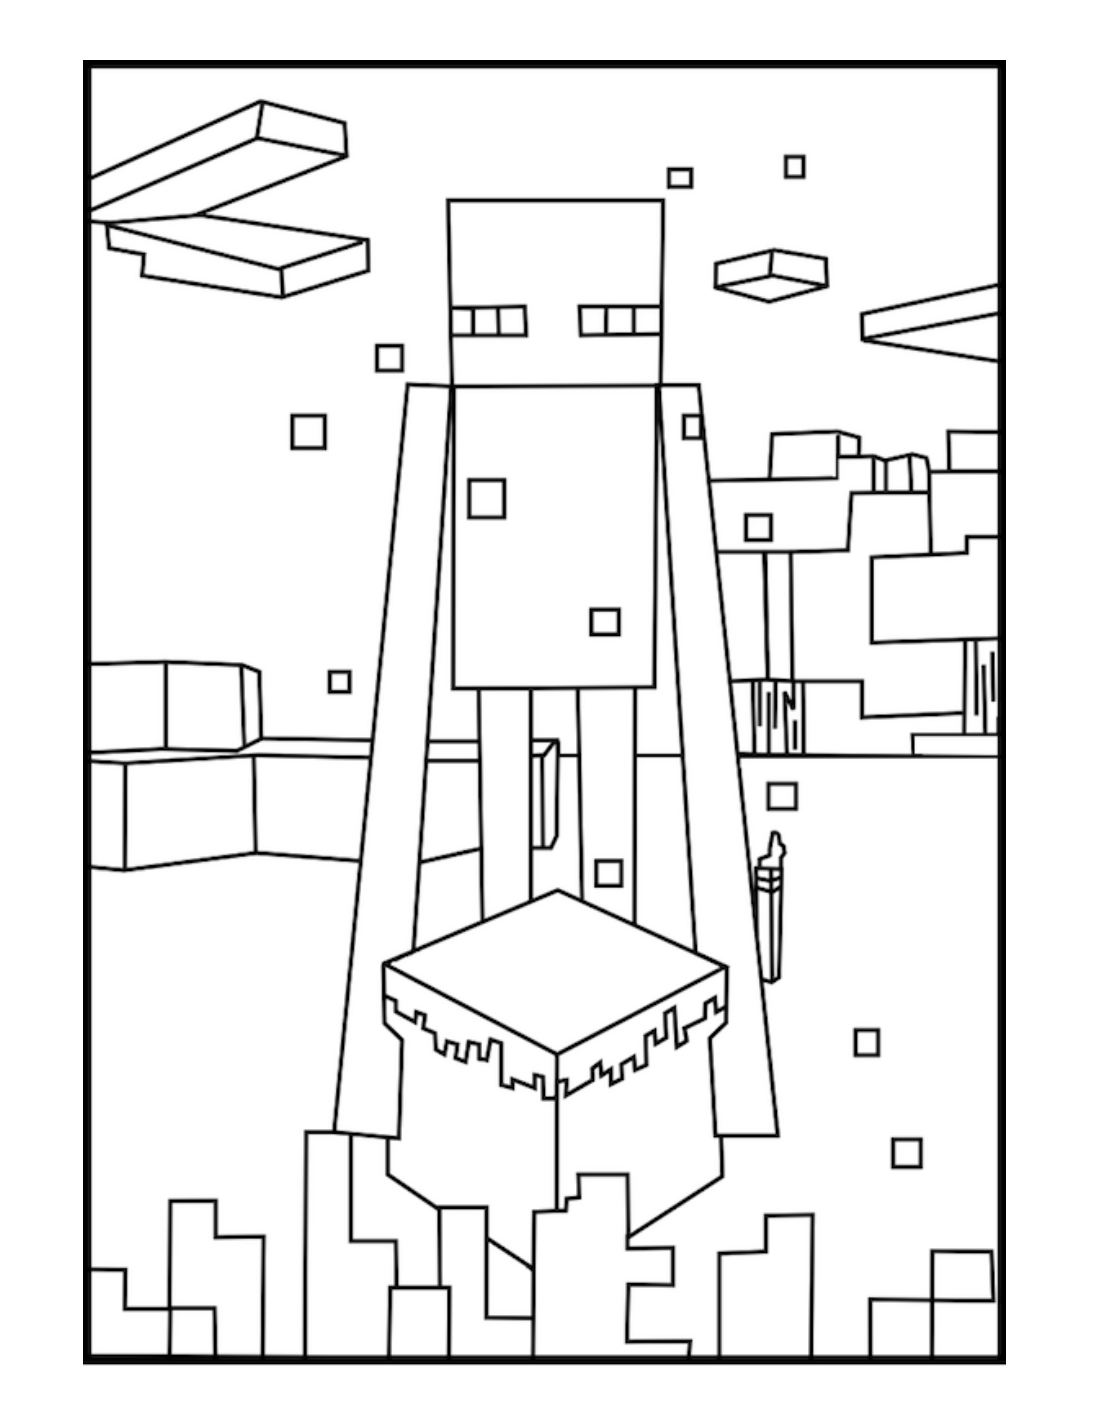 Minecraft Coloring Page Enderman Weihnachtsmalvorlagen Minecraft Ausmalbilder Ausmalbilder